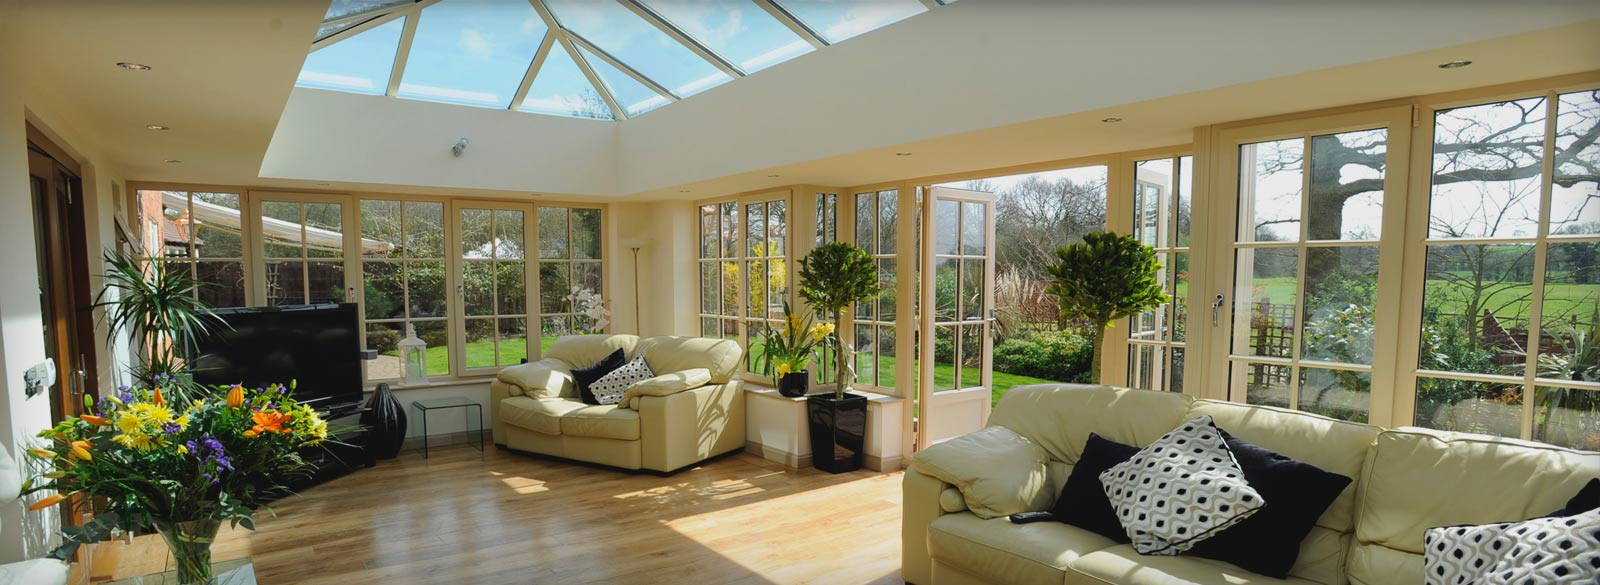 Conservatory Design Amp Installation Luxury Bespoke Creations